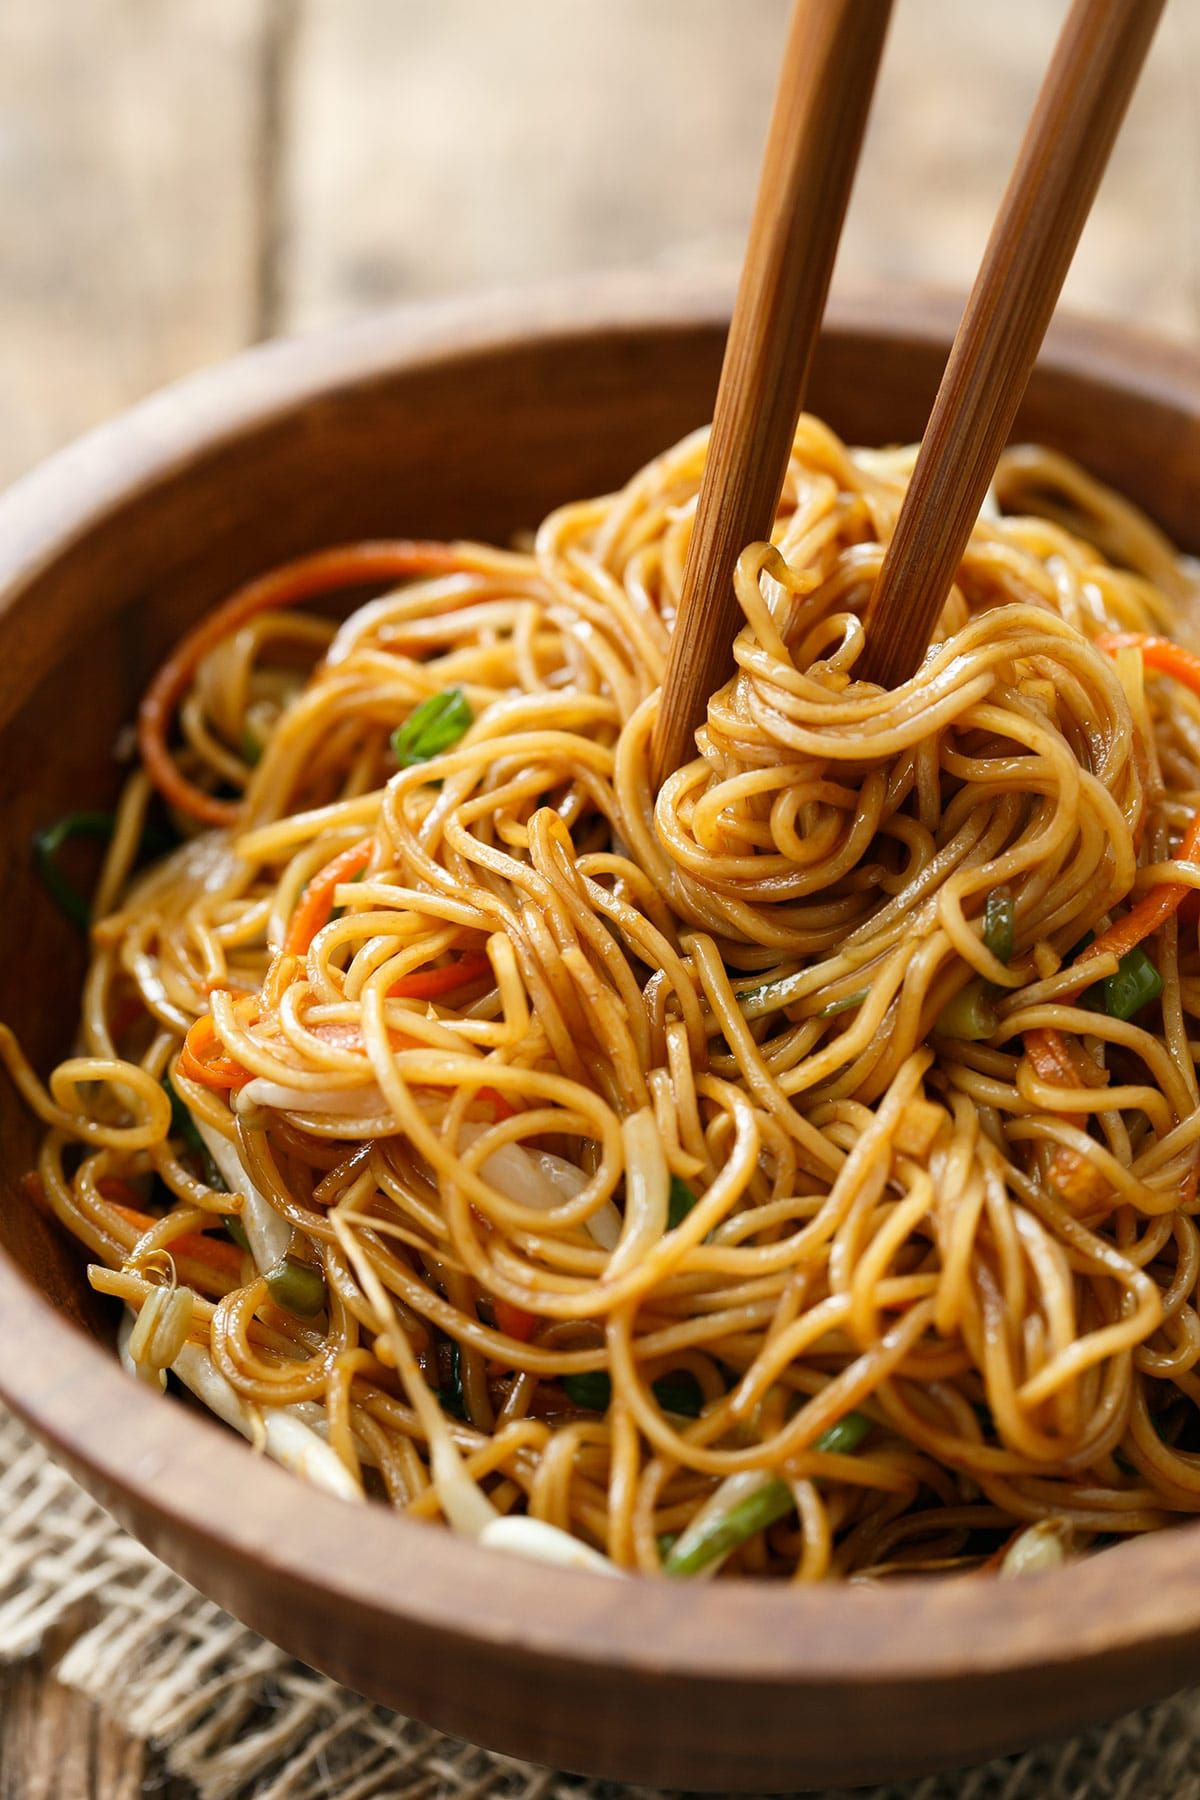 noodles sauce soy noodle recipe fry stir food chinese recipes pasta dishes fried vs asian bean sprouts easy onions spaghetti